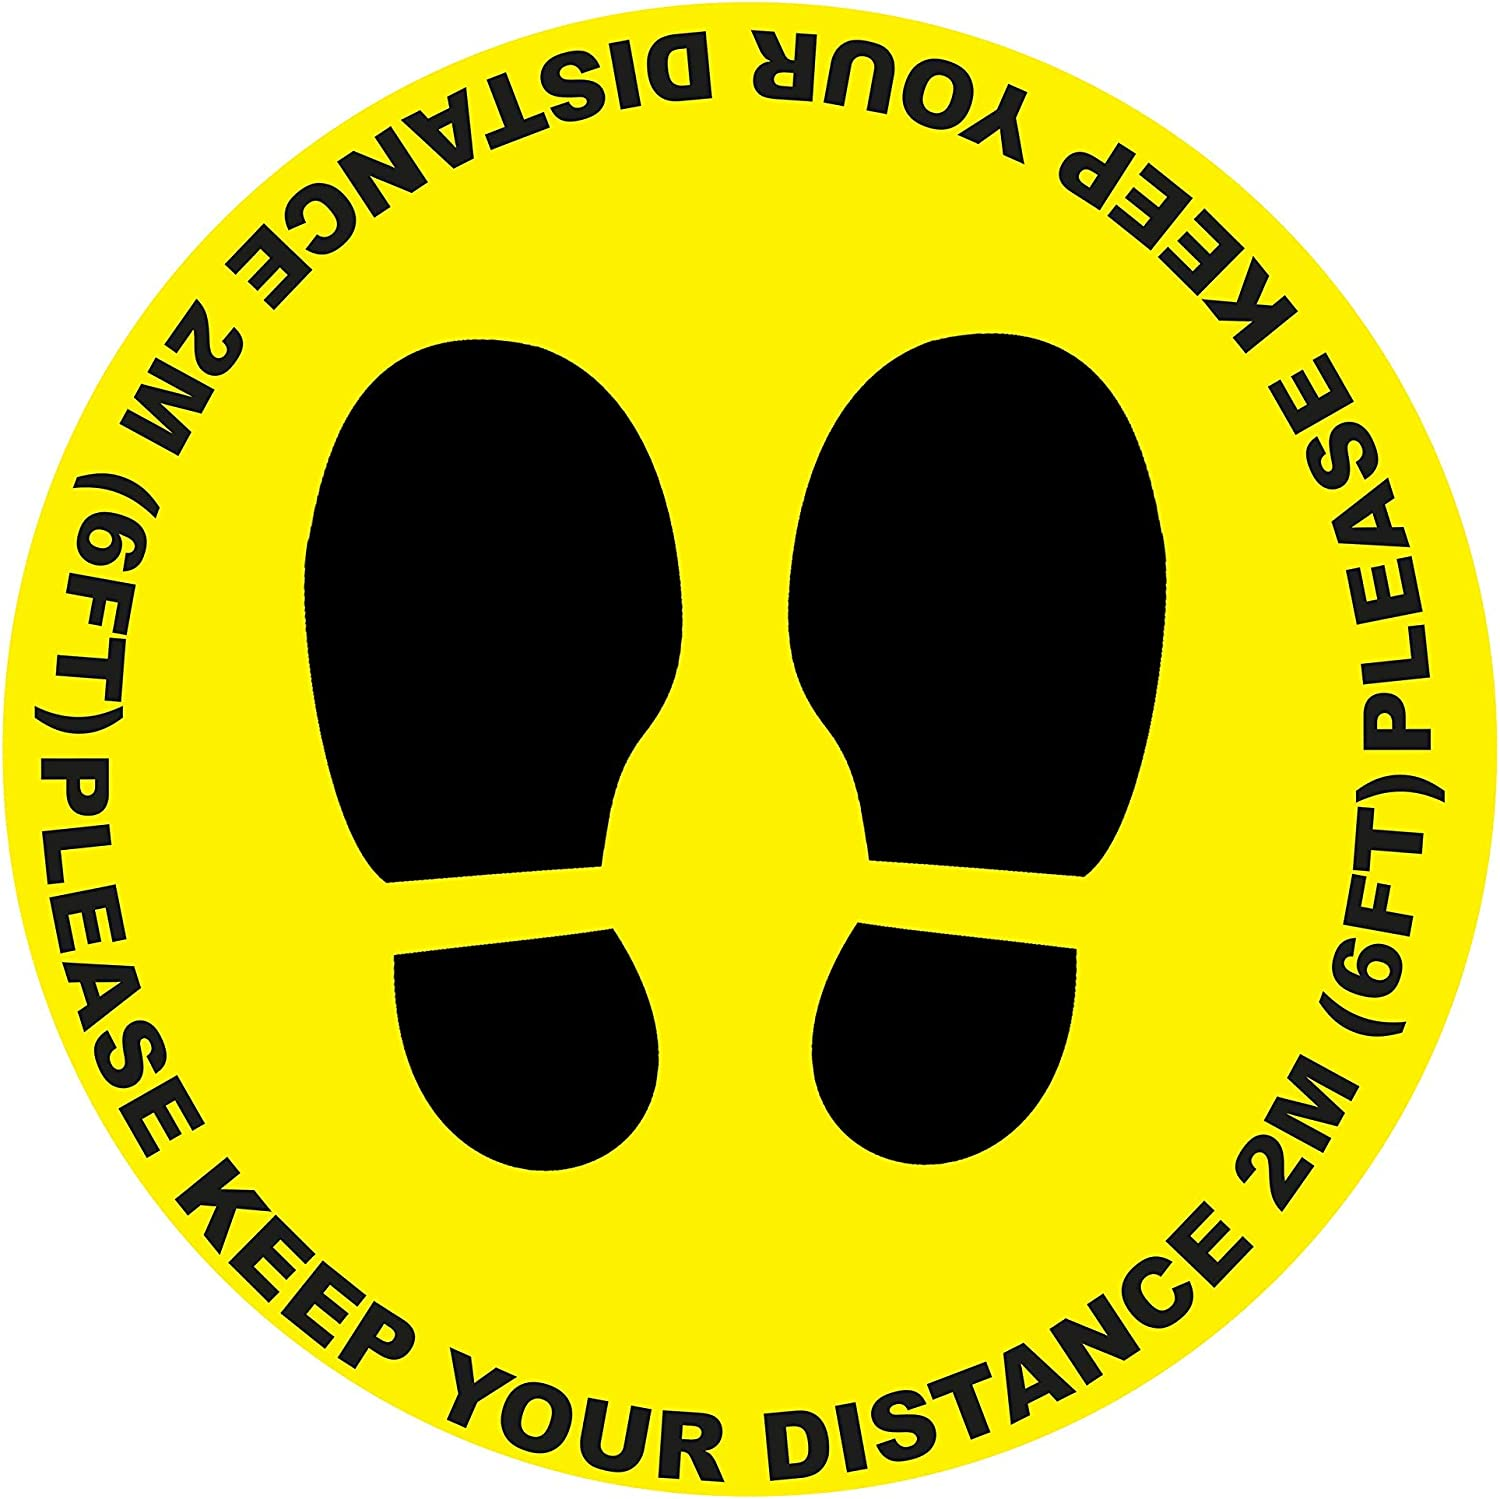 5 67% OFF of fixed price X Atlanta Mall Please Keep Your Distance Sticker - Sign Self Circle Warning